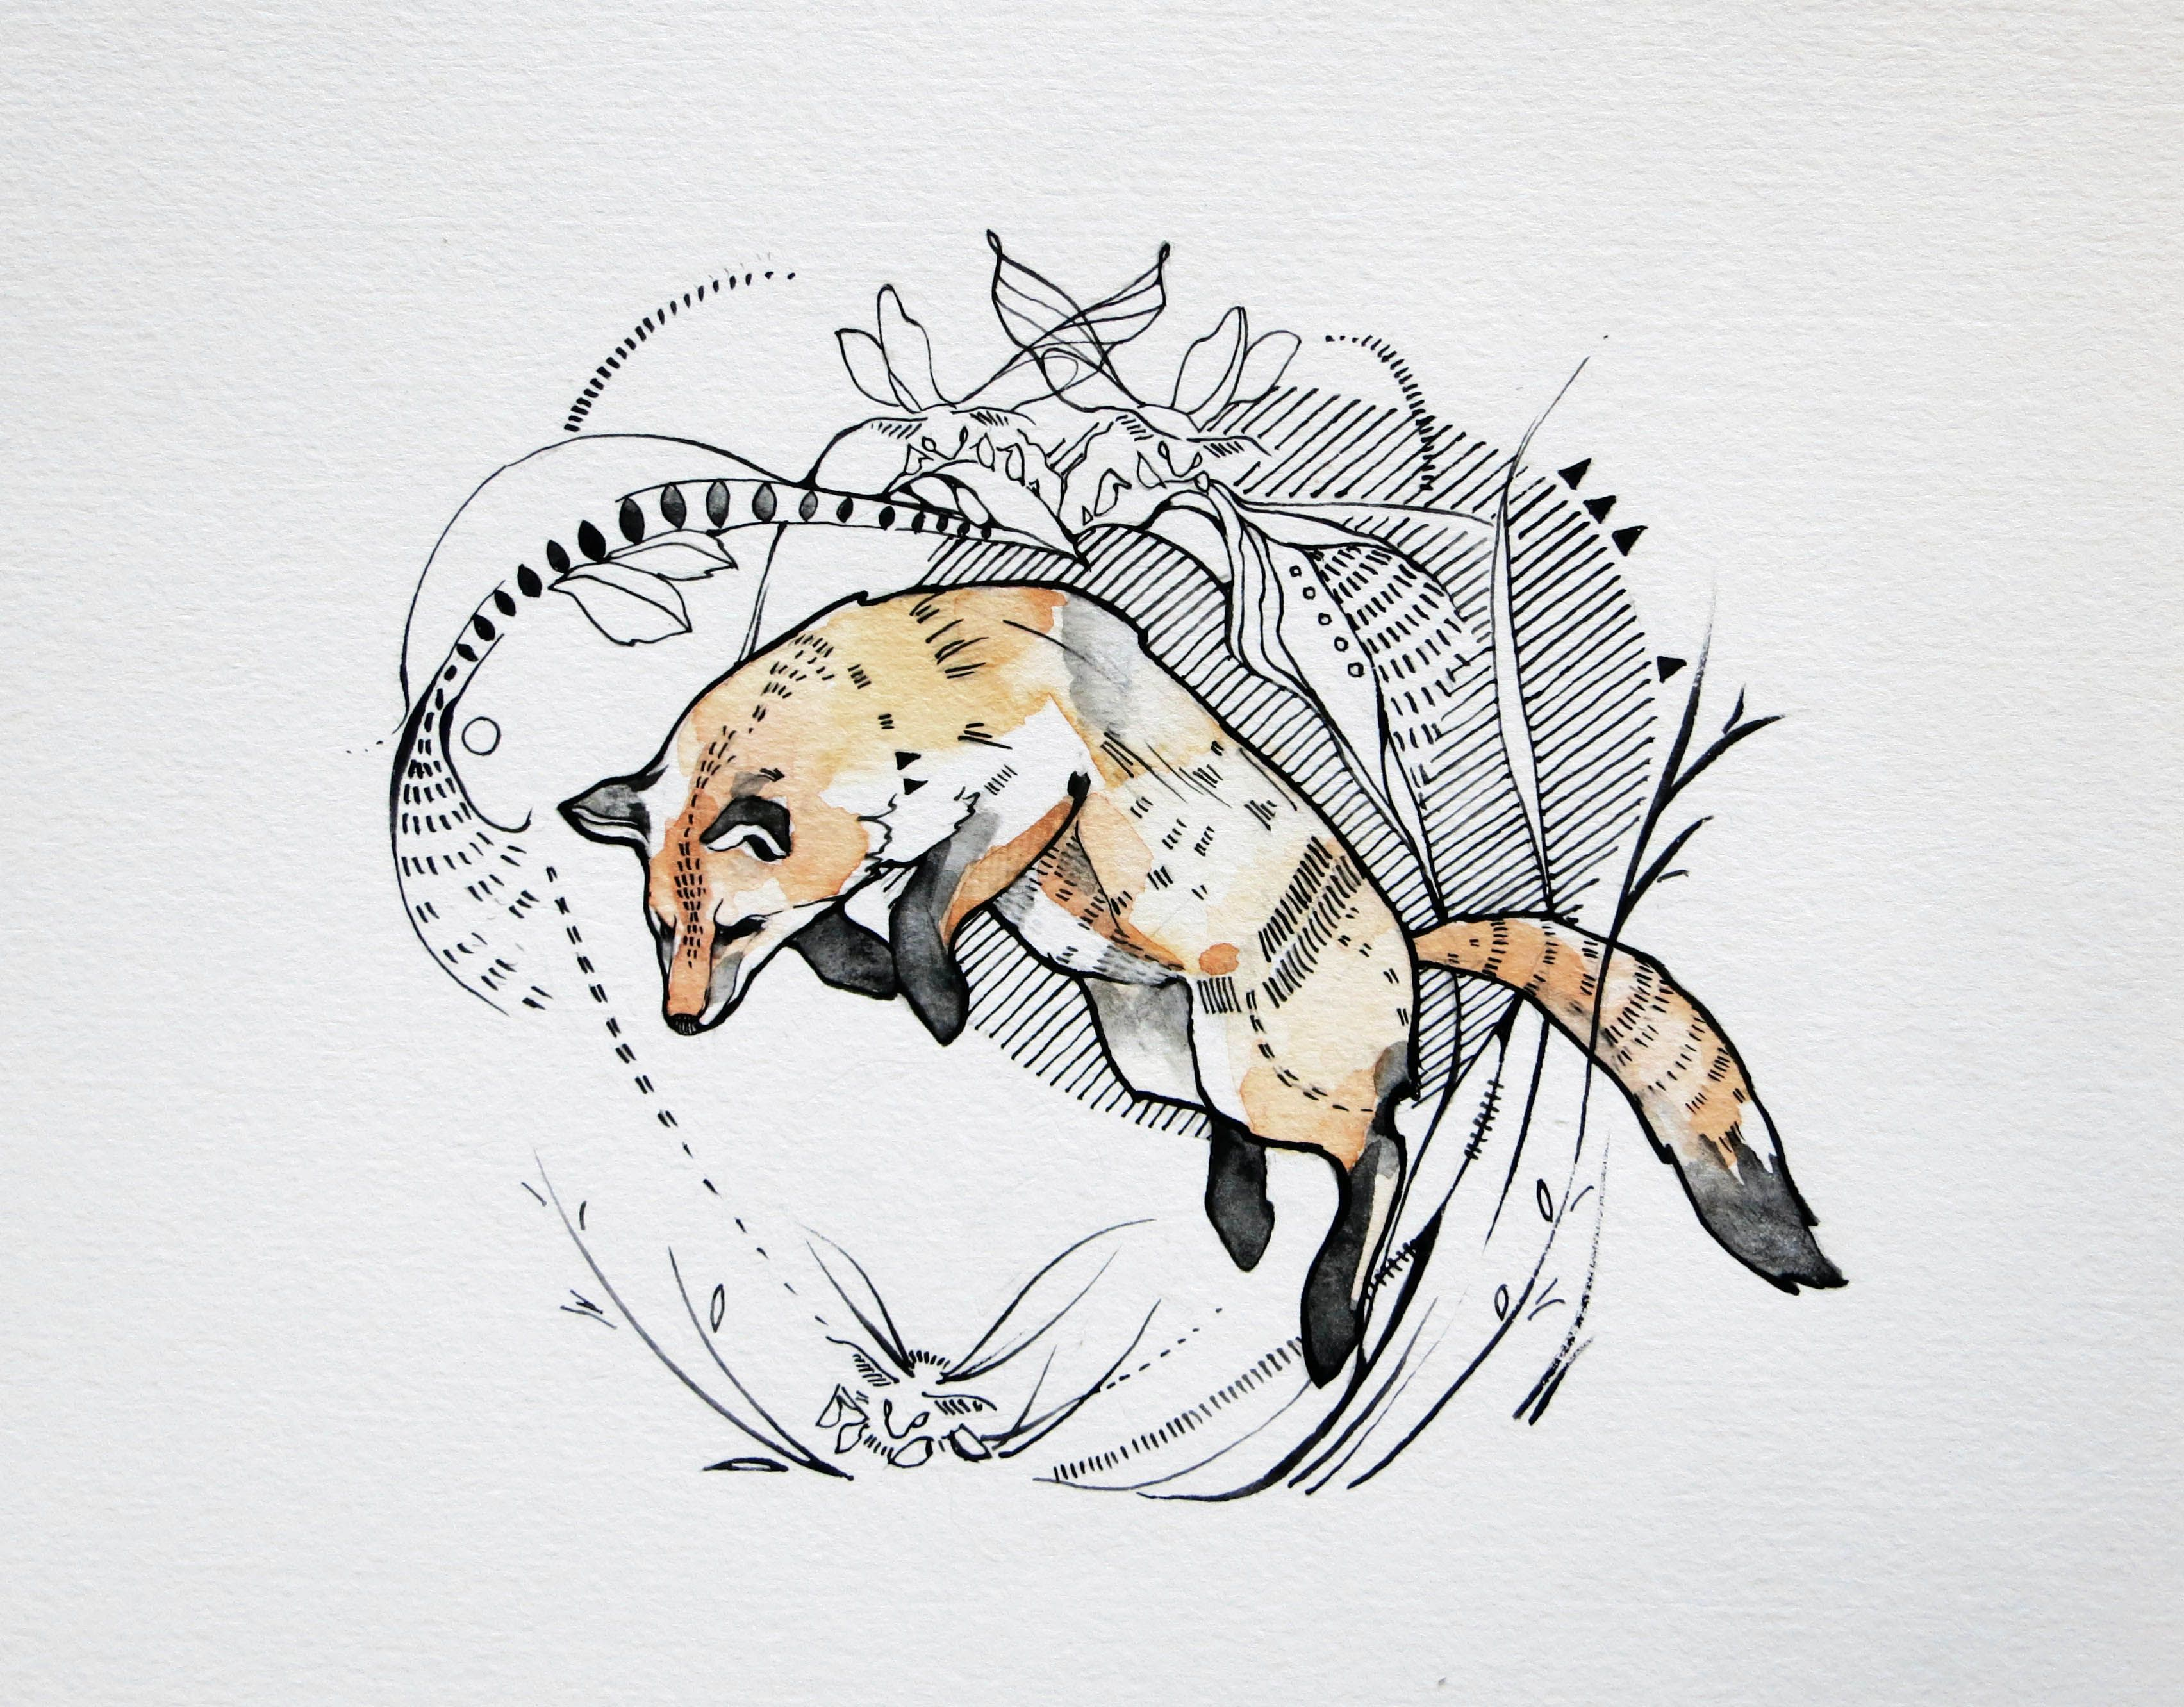 Illustration Tattoos: Fox Illustration Tattoo -Laura Patterson